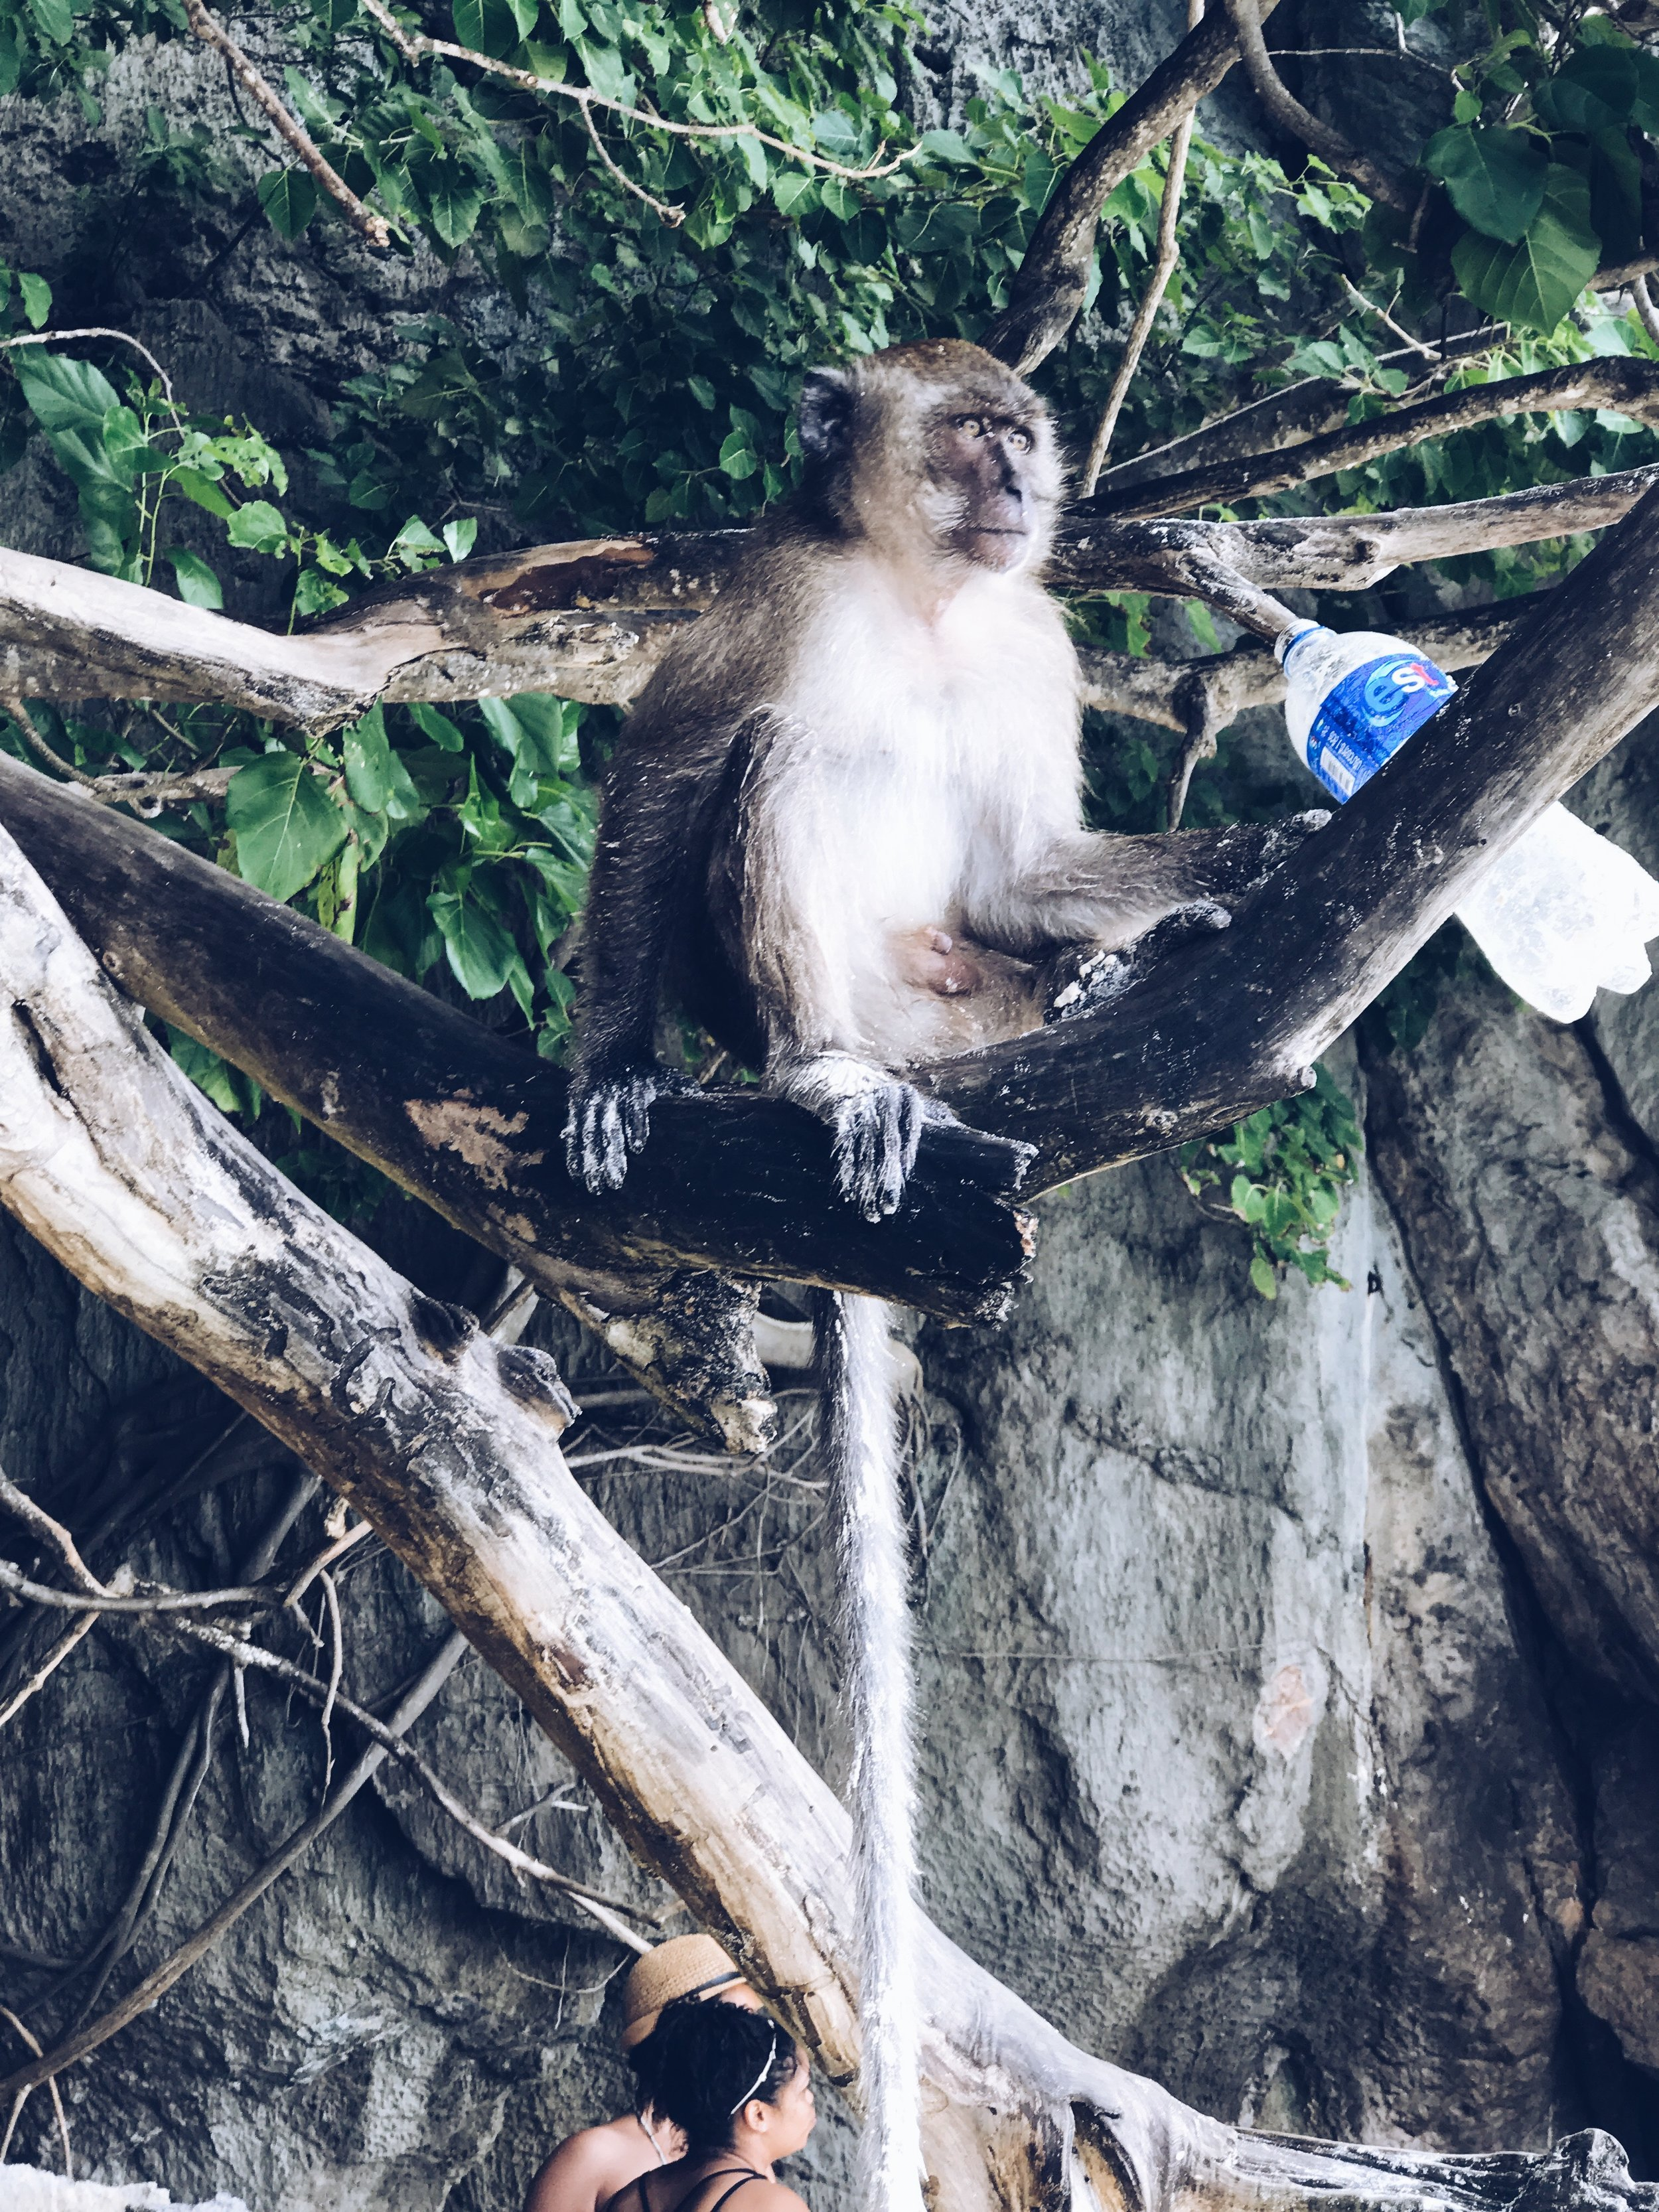 That monkey stole that bottle of Pepsi.... - He drank it like it was a Hennessy on the rocks....